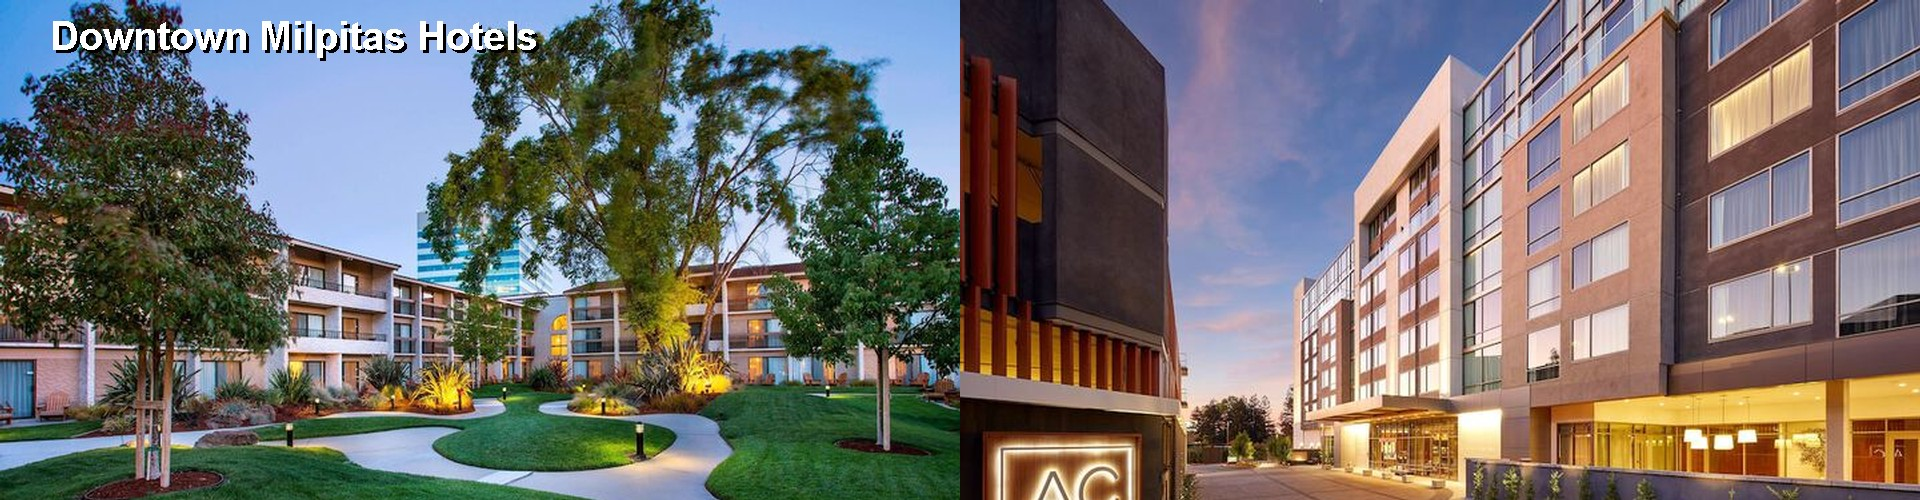 5 Best Hotels near Downtown Milpitas